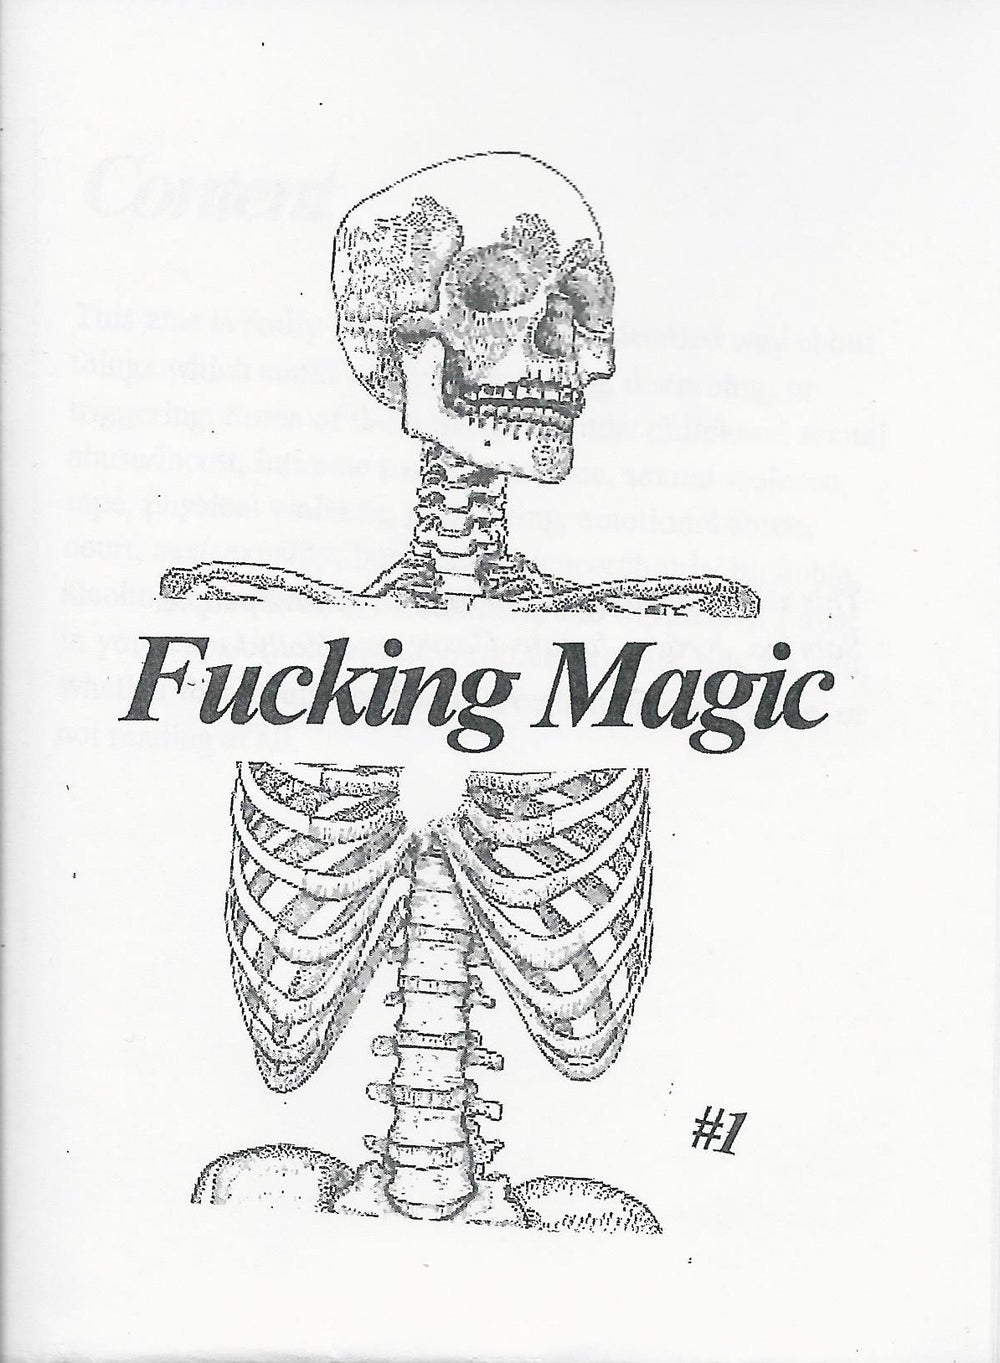 Fucking Magic #1 (Zine)